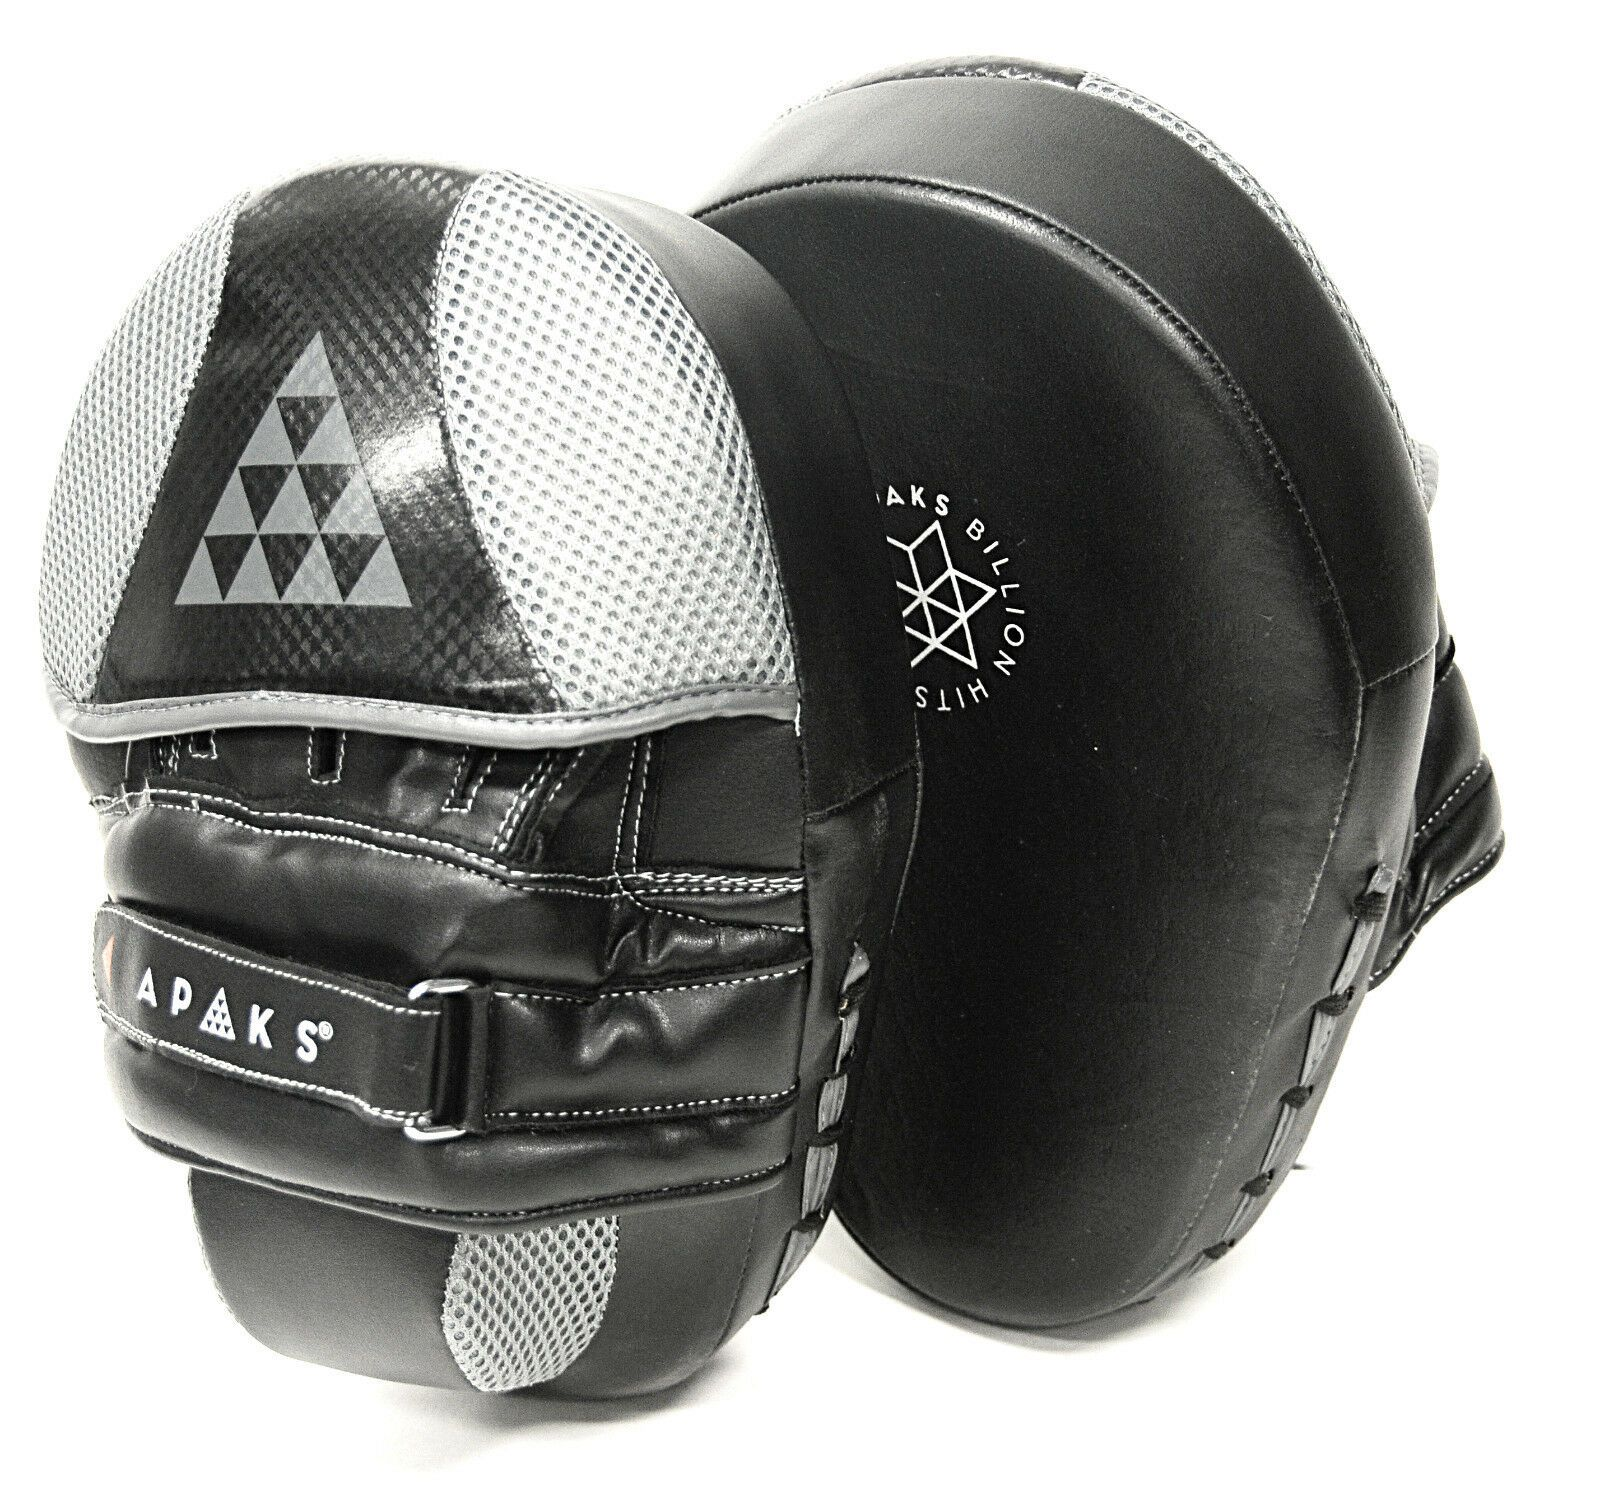 Apaks The Fighting Leather Boxing Training Gloves